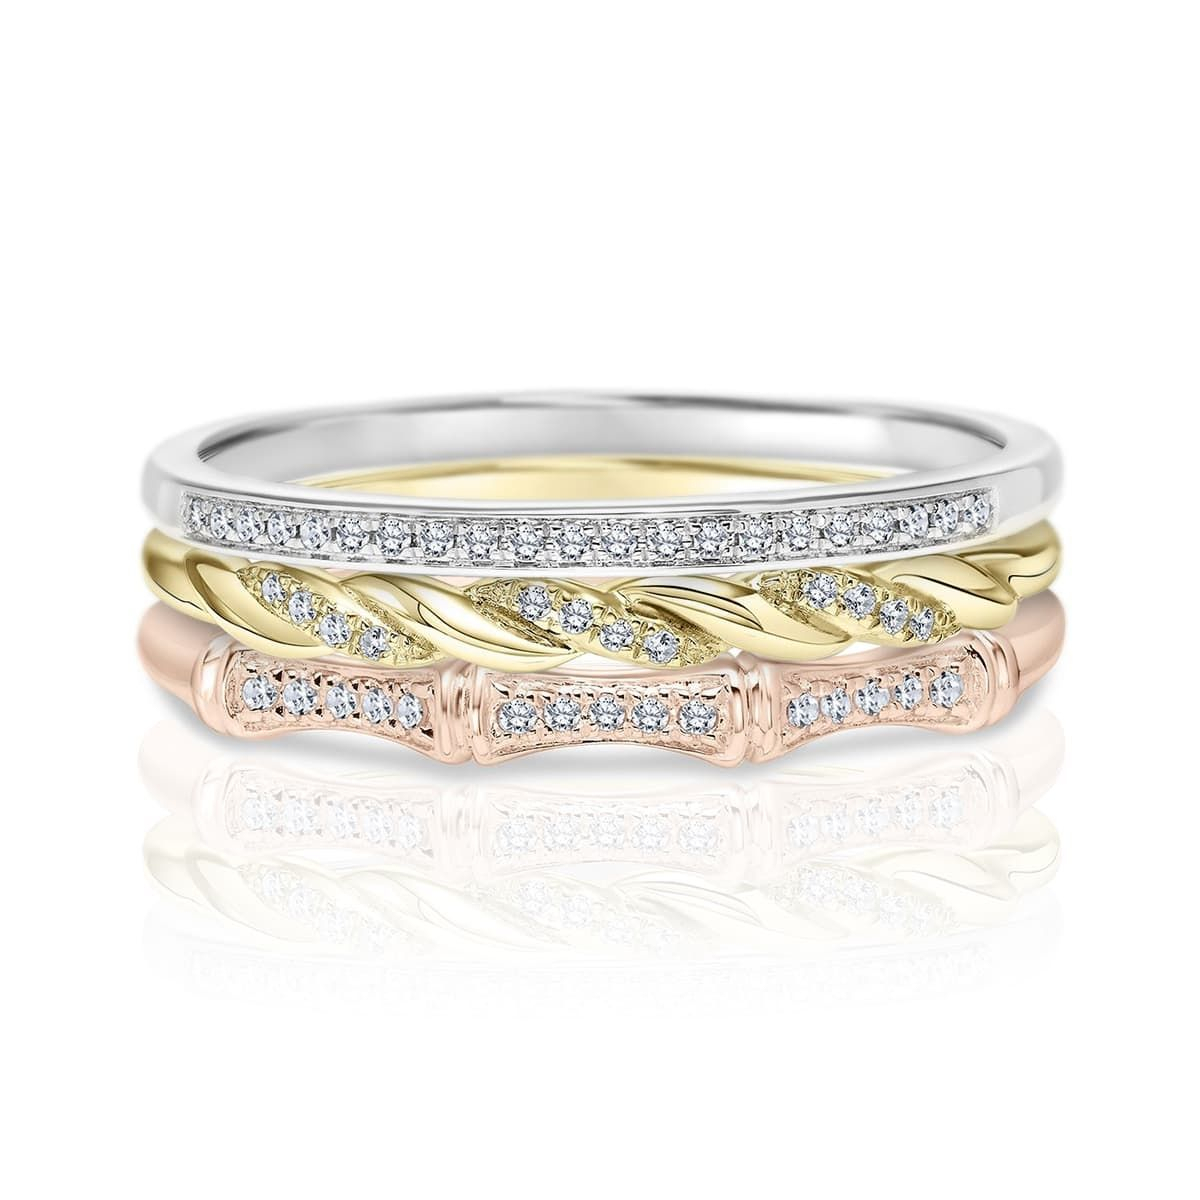 Rings | Diamonds International Regarding Newest Diamond Three Row Anniversary Bands In Rose Gold (View 13 of 25)